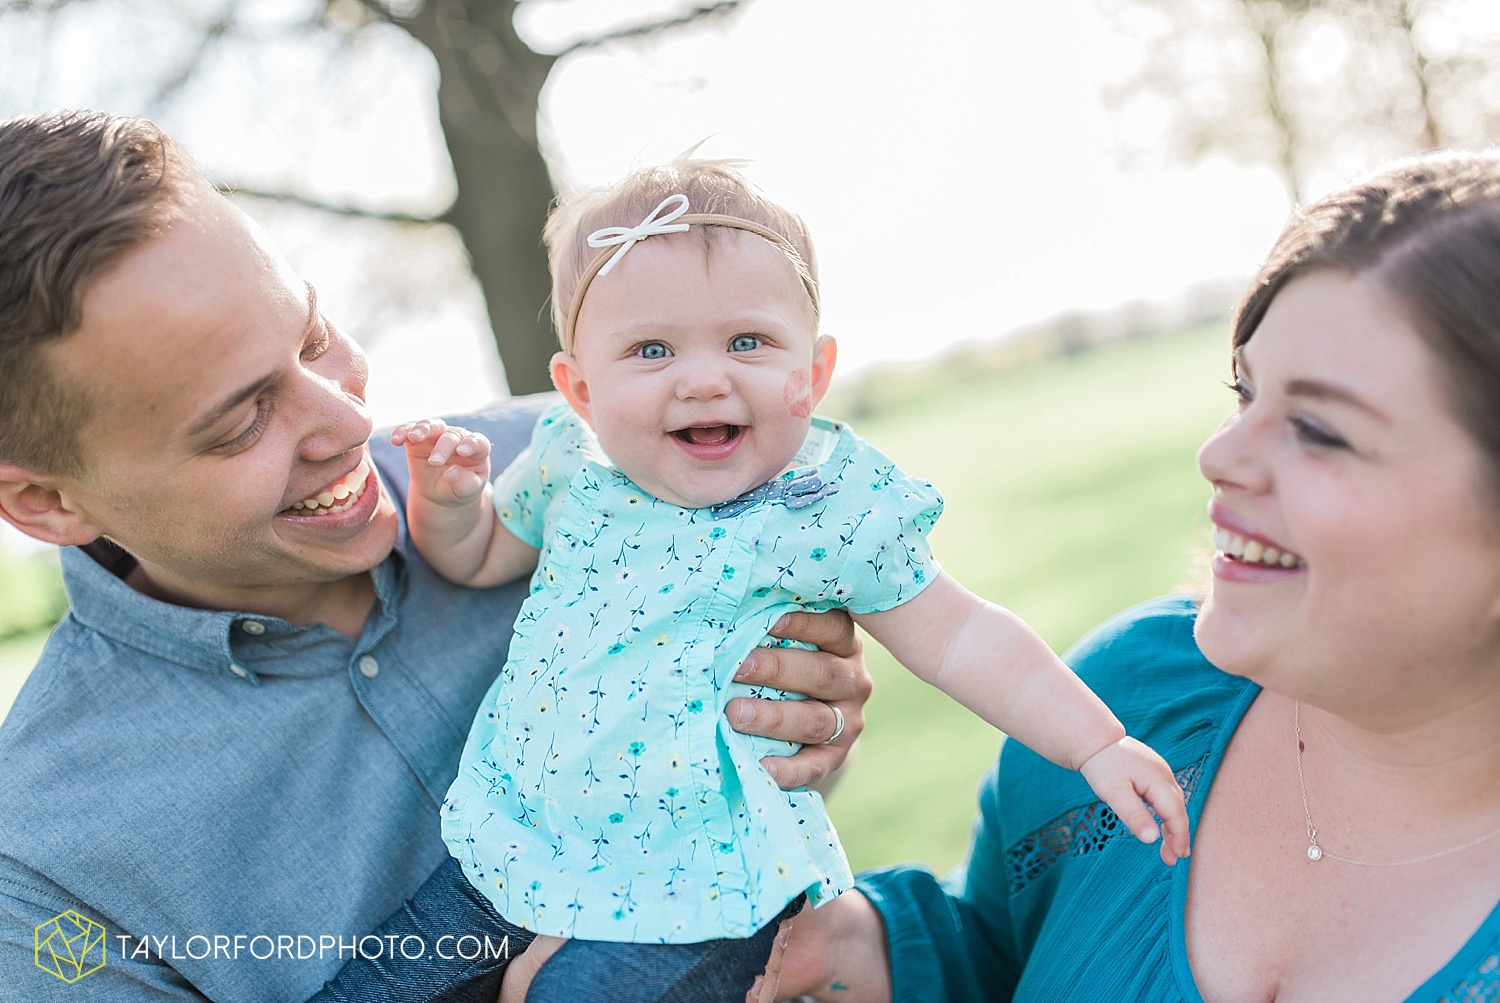 fort-wayne-indiana-family-photographer-taylor-ford-photography-van-wert-lima-ohio-soaff-park_1558.jpg